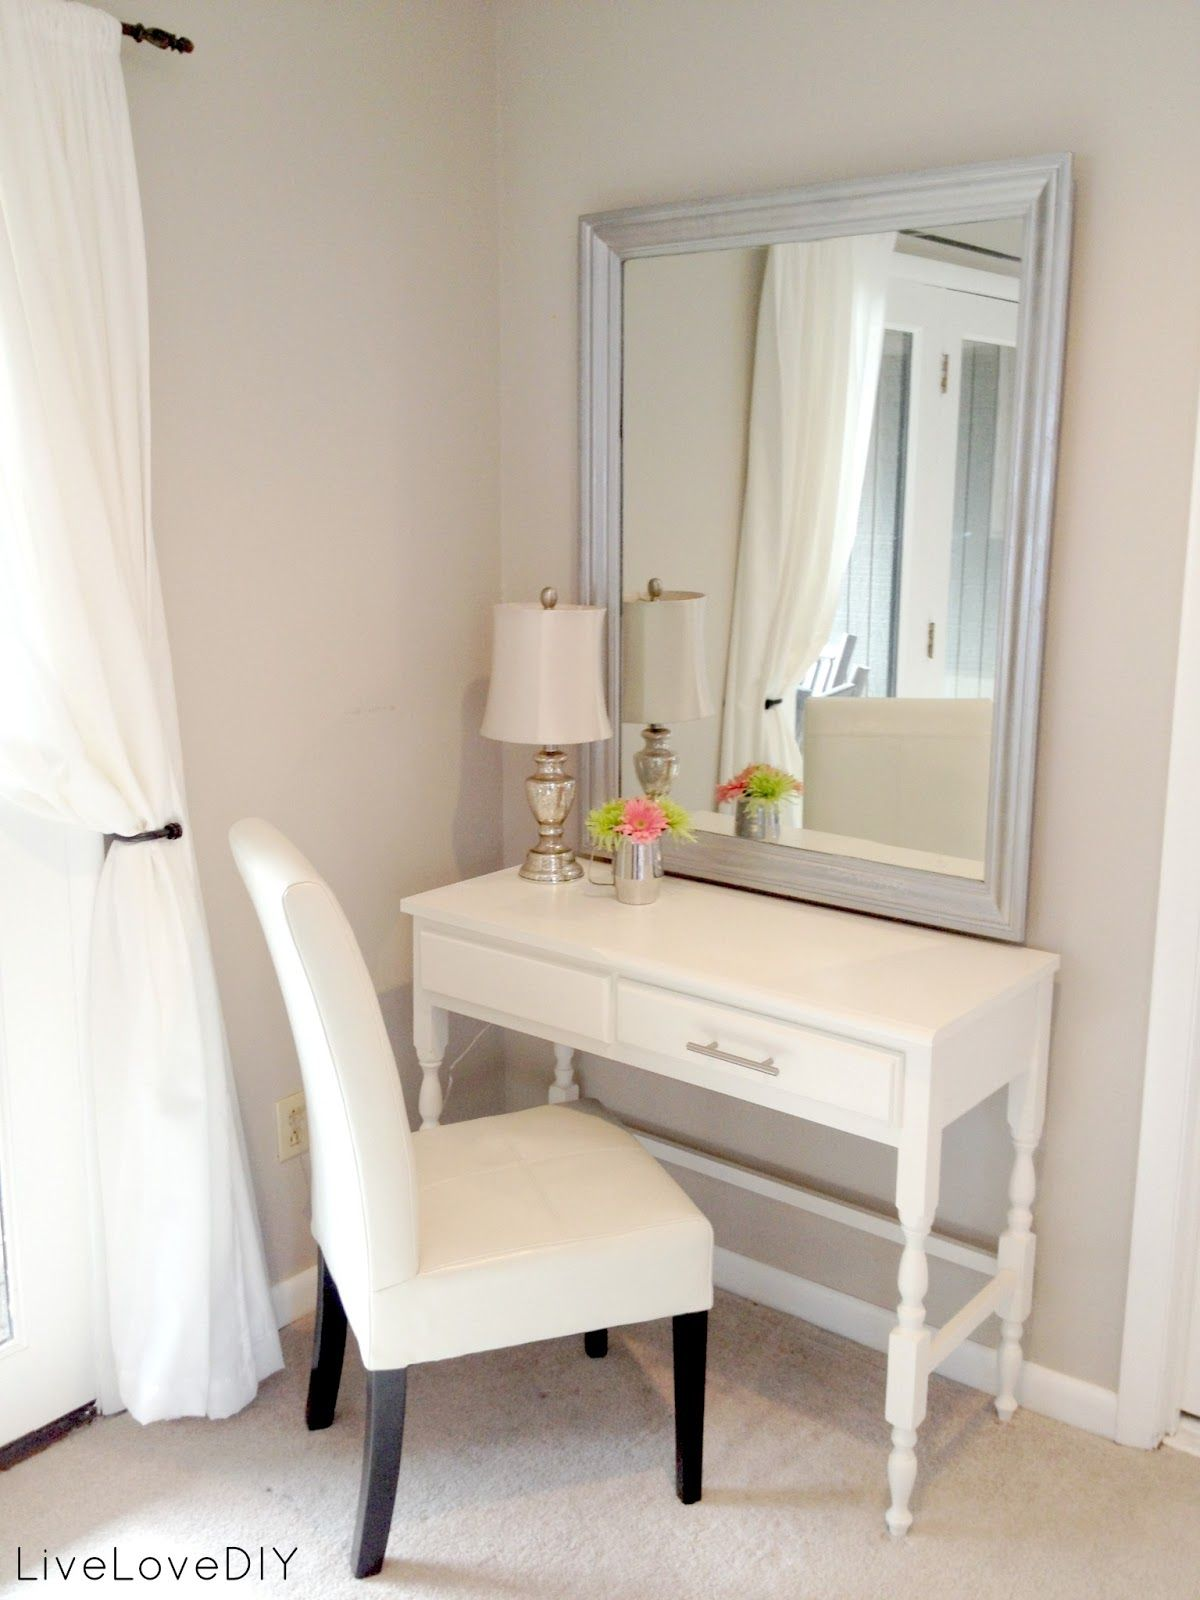 Vanity Bedroom Makeup Livelovediy Bedroom Ideas How To Decorate On A Budget